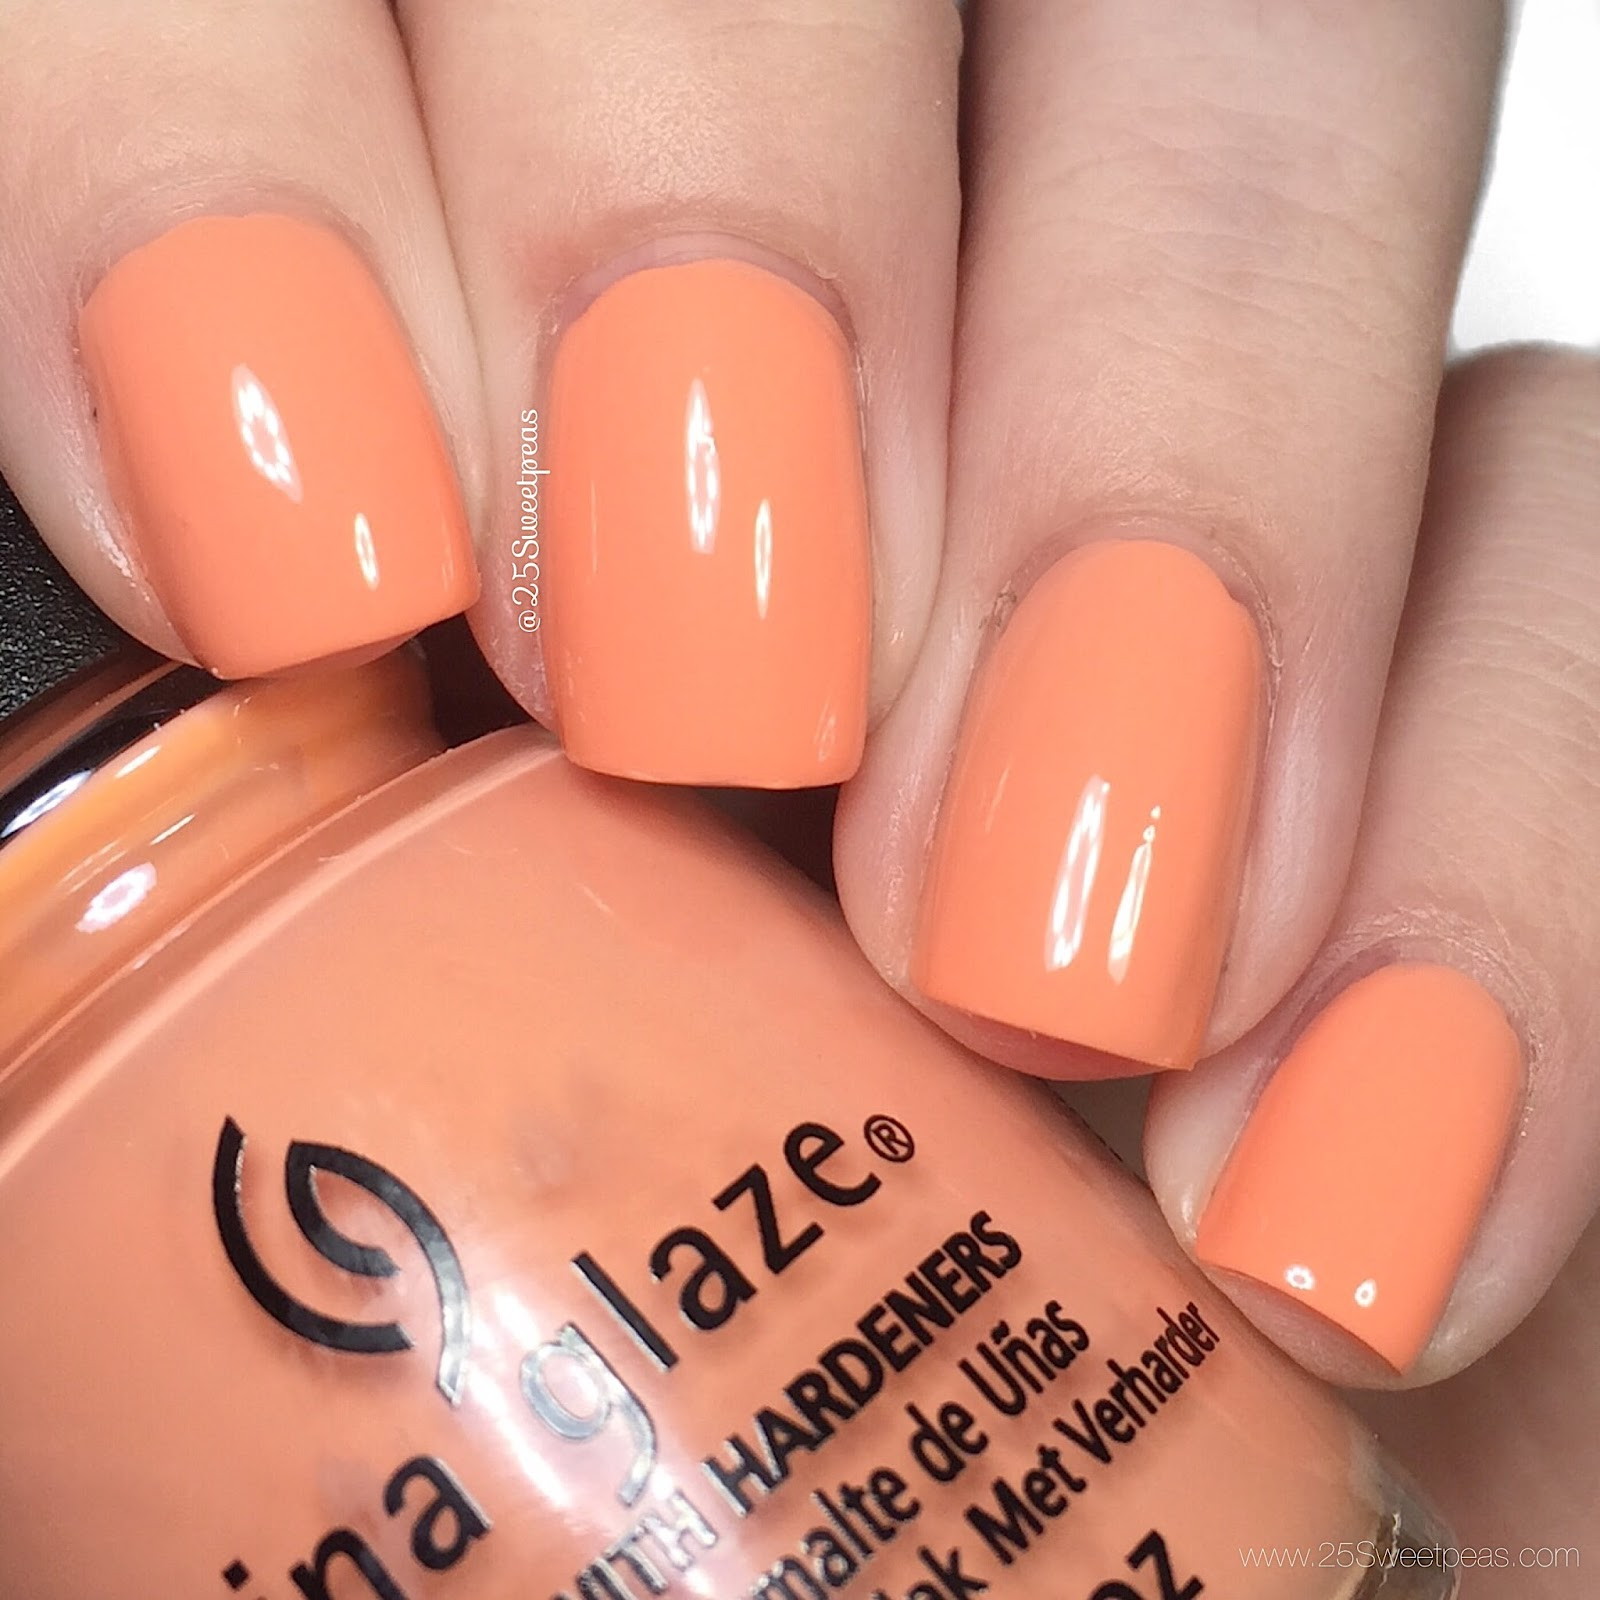 China Glaze Pilates Please